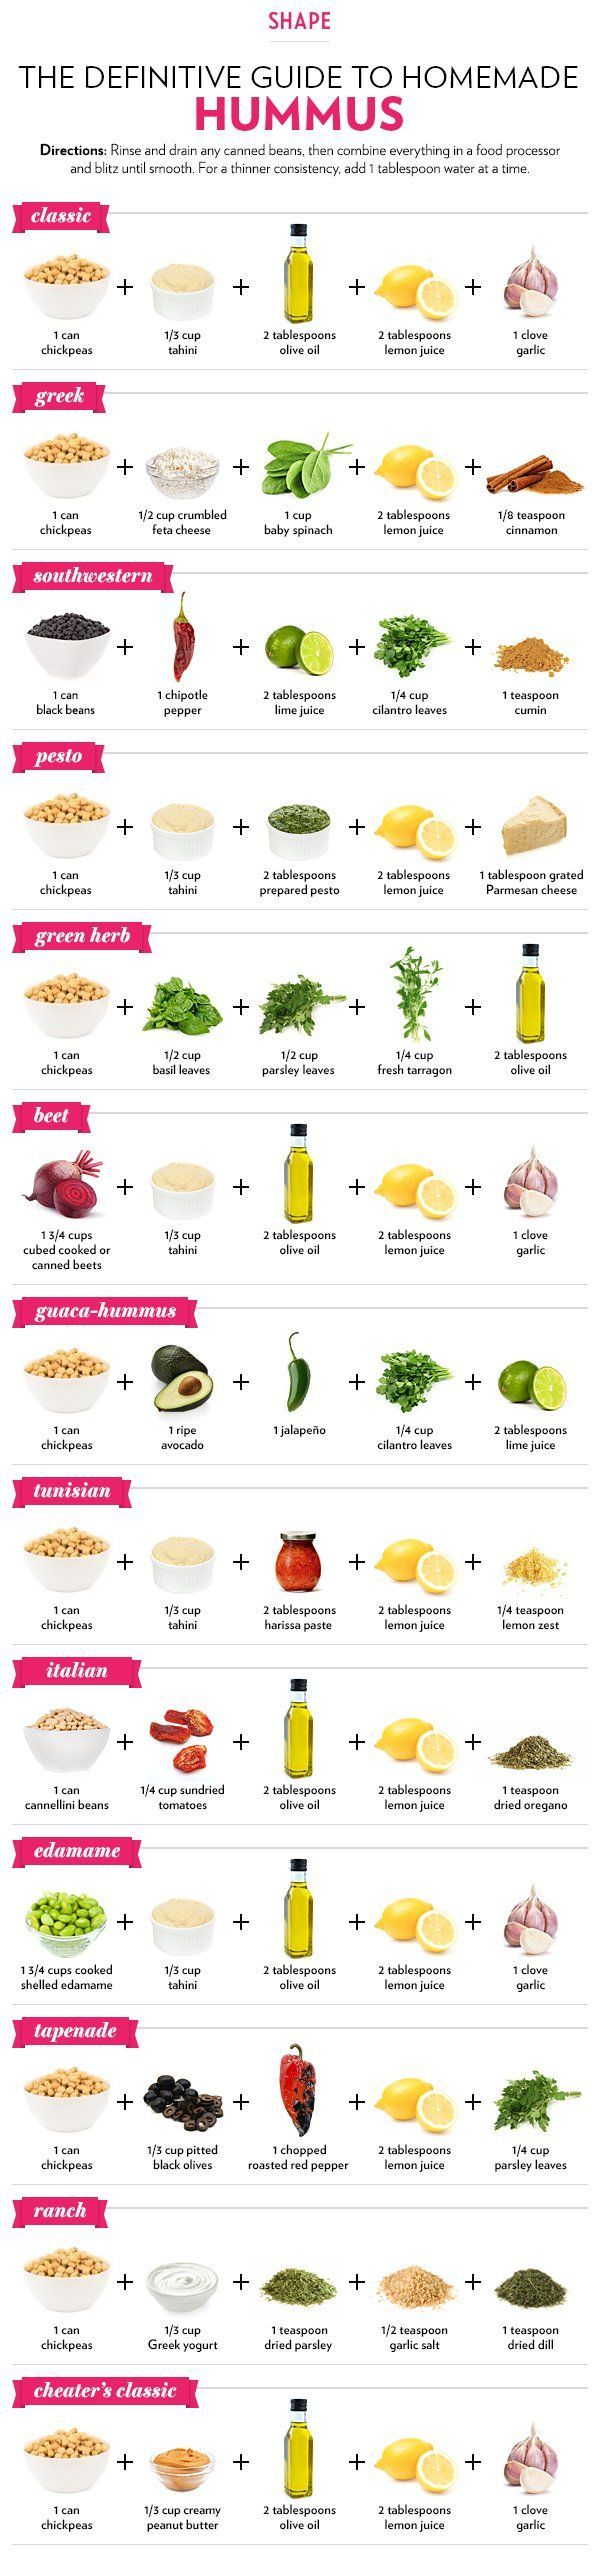 13 Ways to Make Homemade Hummus | #vitamix Promo just announced! From today through November, you can purchase a Certified Reconditioned Vitamix Standard blender starting at $299. This is a $30 savings off the normal reconditioned price and hundreds off a new Vitamix blender. These reconditioned blenders come with a new container and a 5 year warranty. As always, use my code 06-006499 at checkout for free ground shipping!